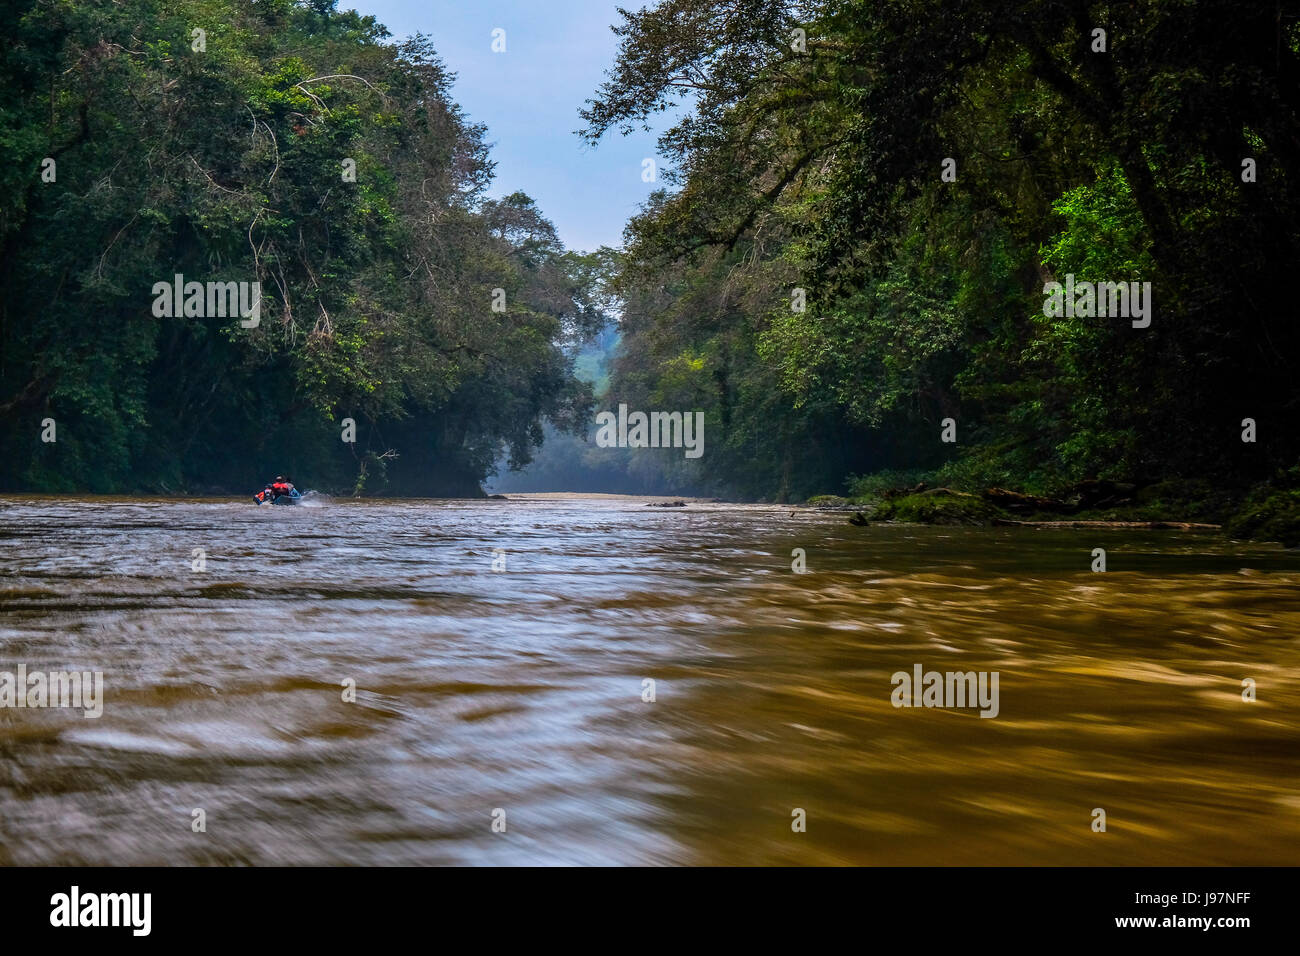 Along the Embaloh river to Betung Kerihun National Park in the Heart Of Borneo, West Kalimantan, Indonesia. - Stock Image